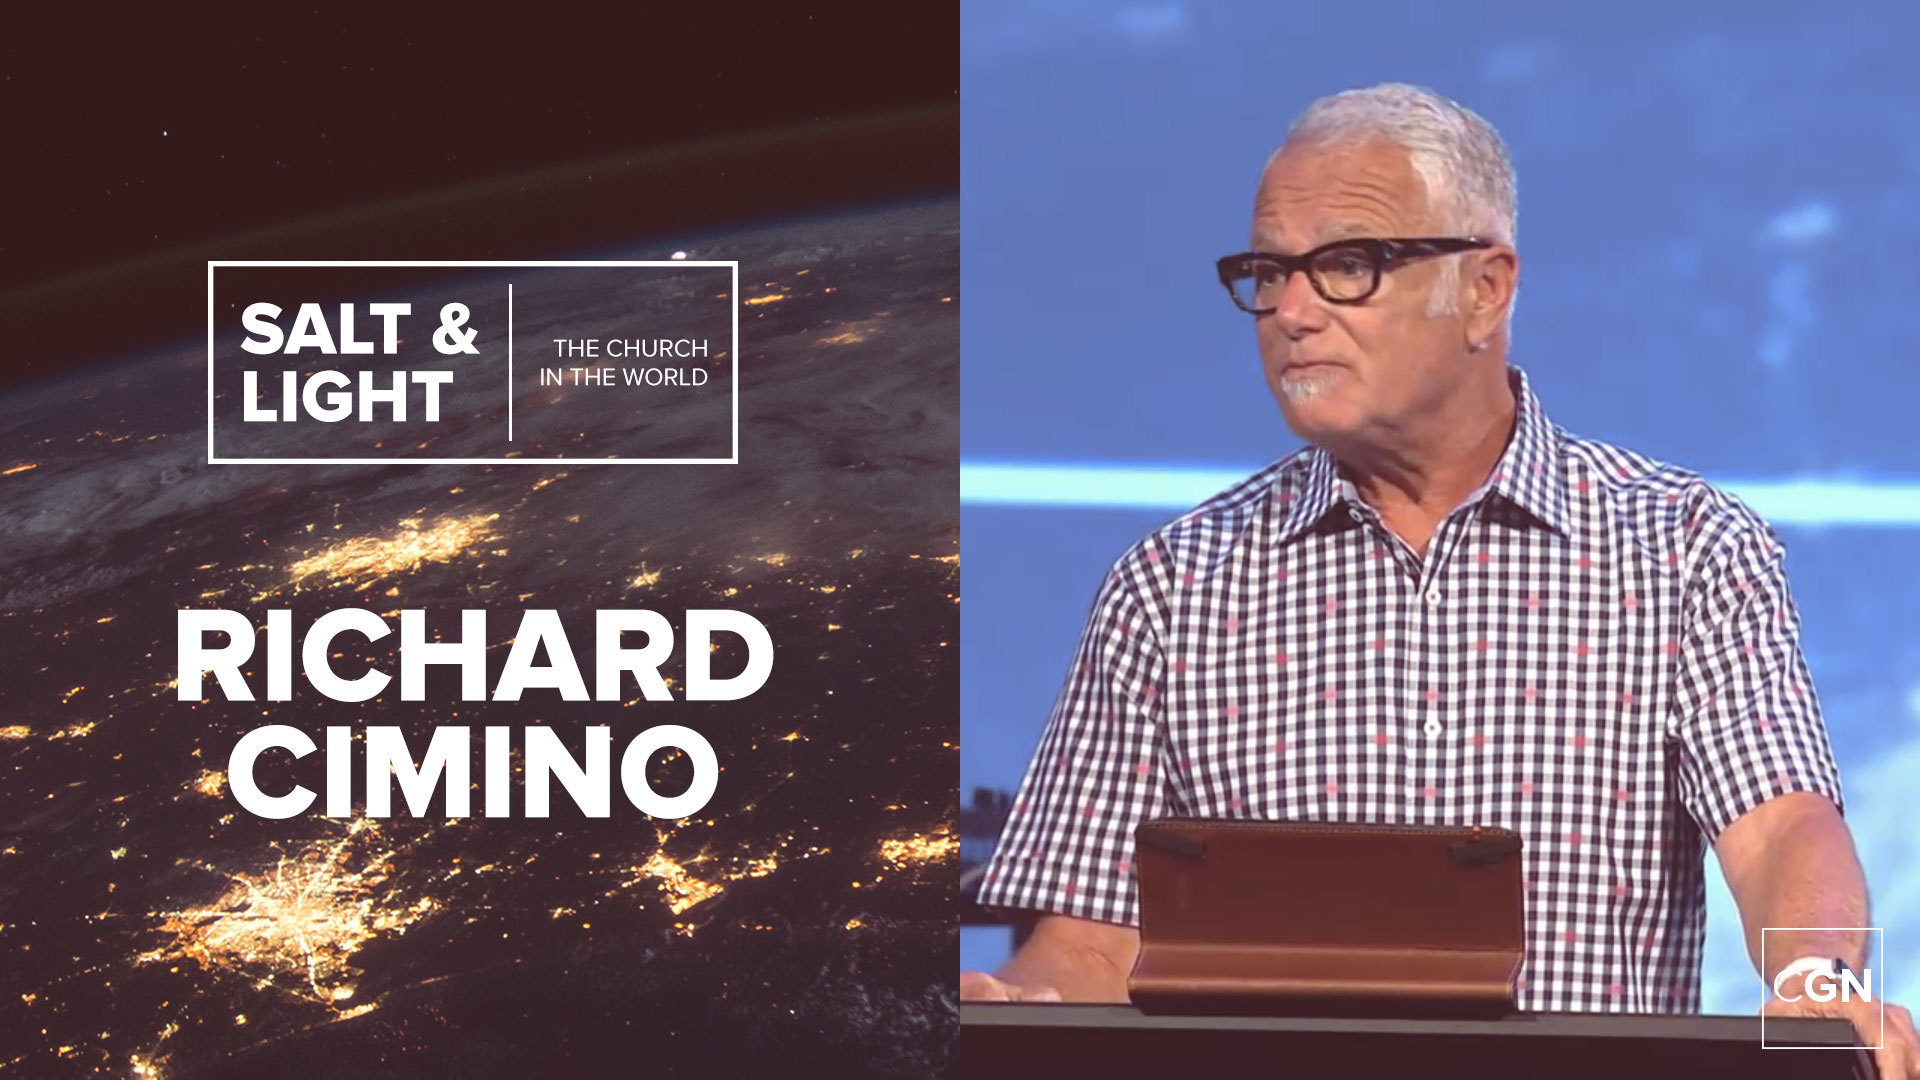 Session 4: Jesus With Sinners - Richard Cimino